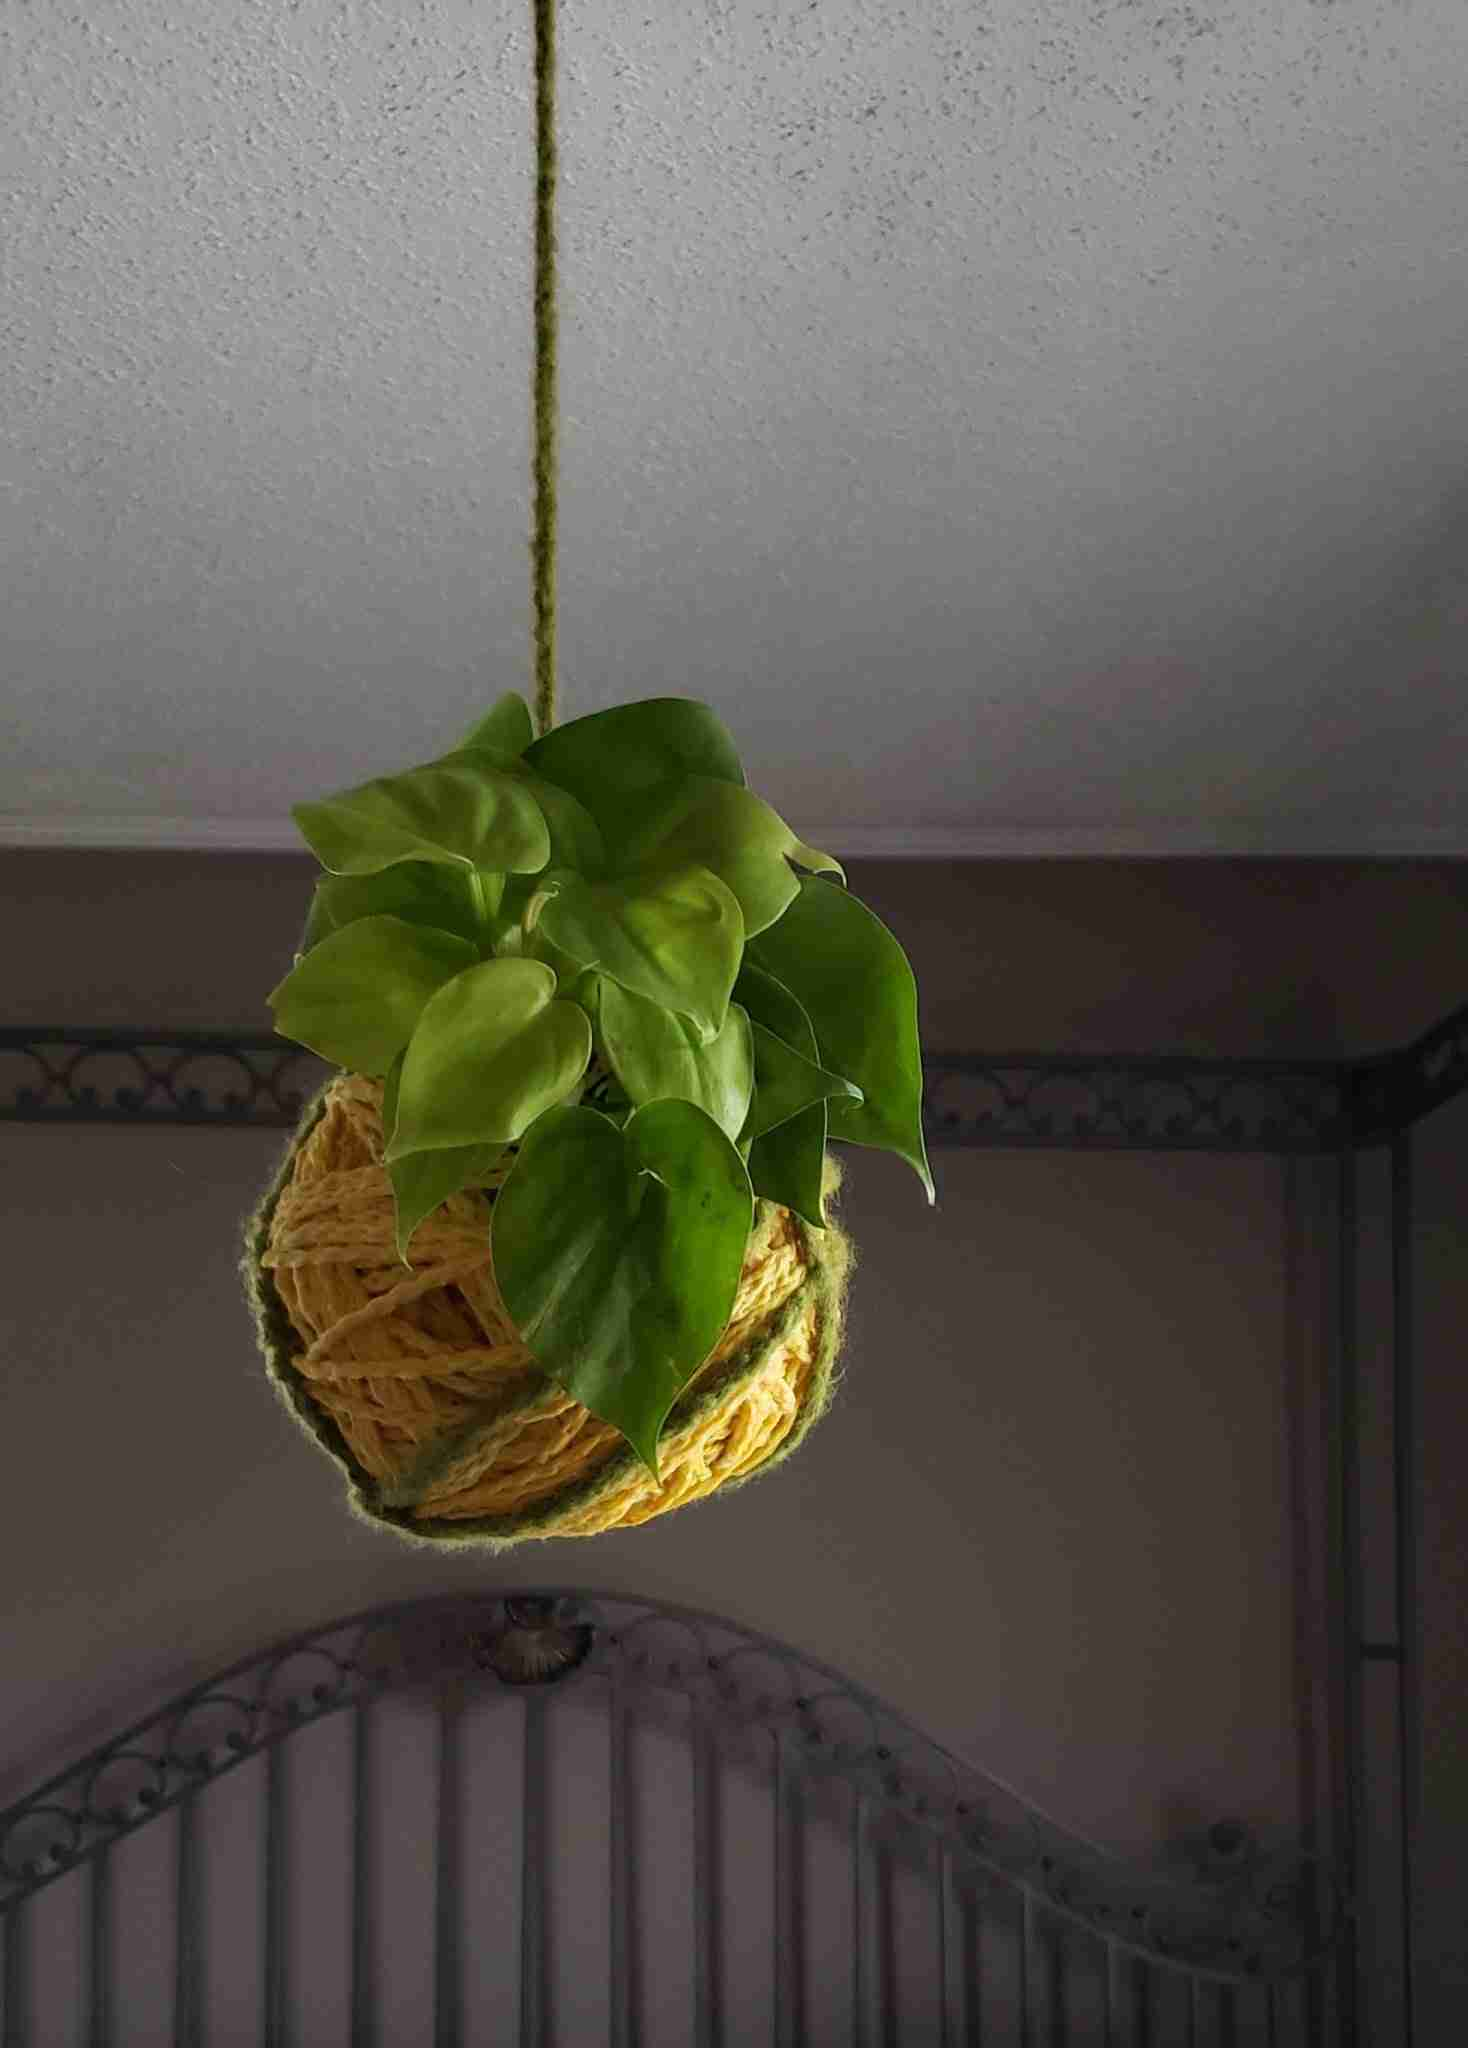 Watering a kokedama is a simple process that should be done at least once weekly for most plants, but to be sure, you can test the weight of your kokedama moss ball to see if it is light (dry) or still a bit hefty (wet and not need of watering.)